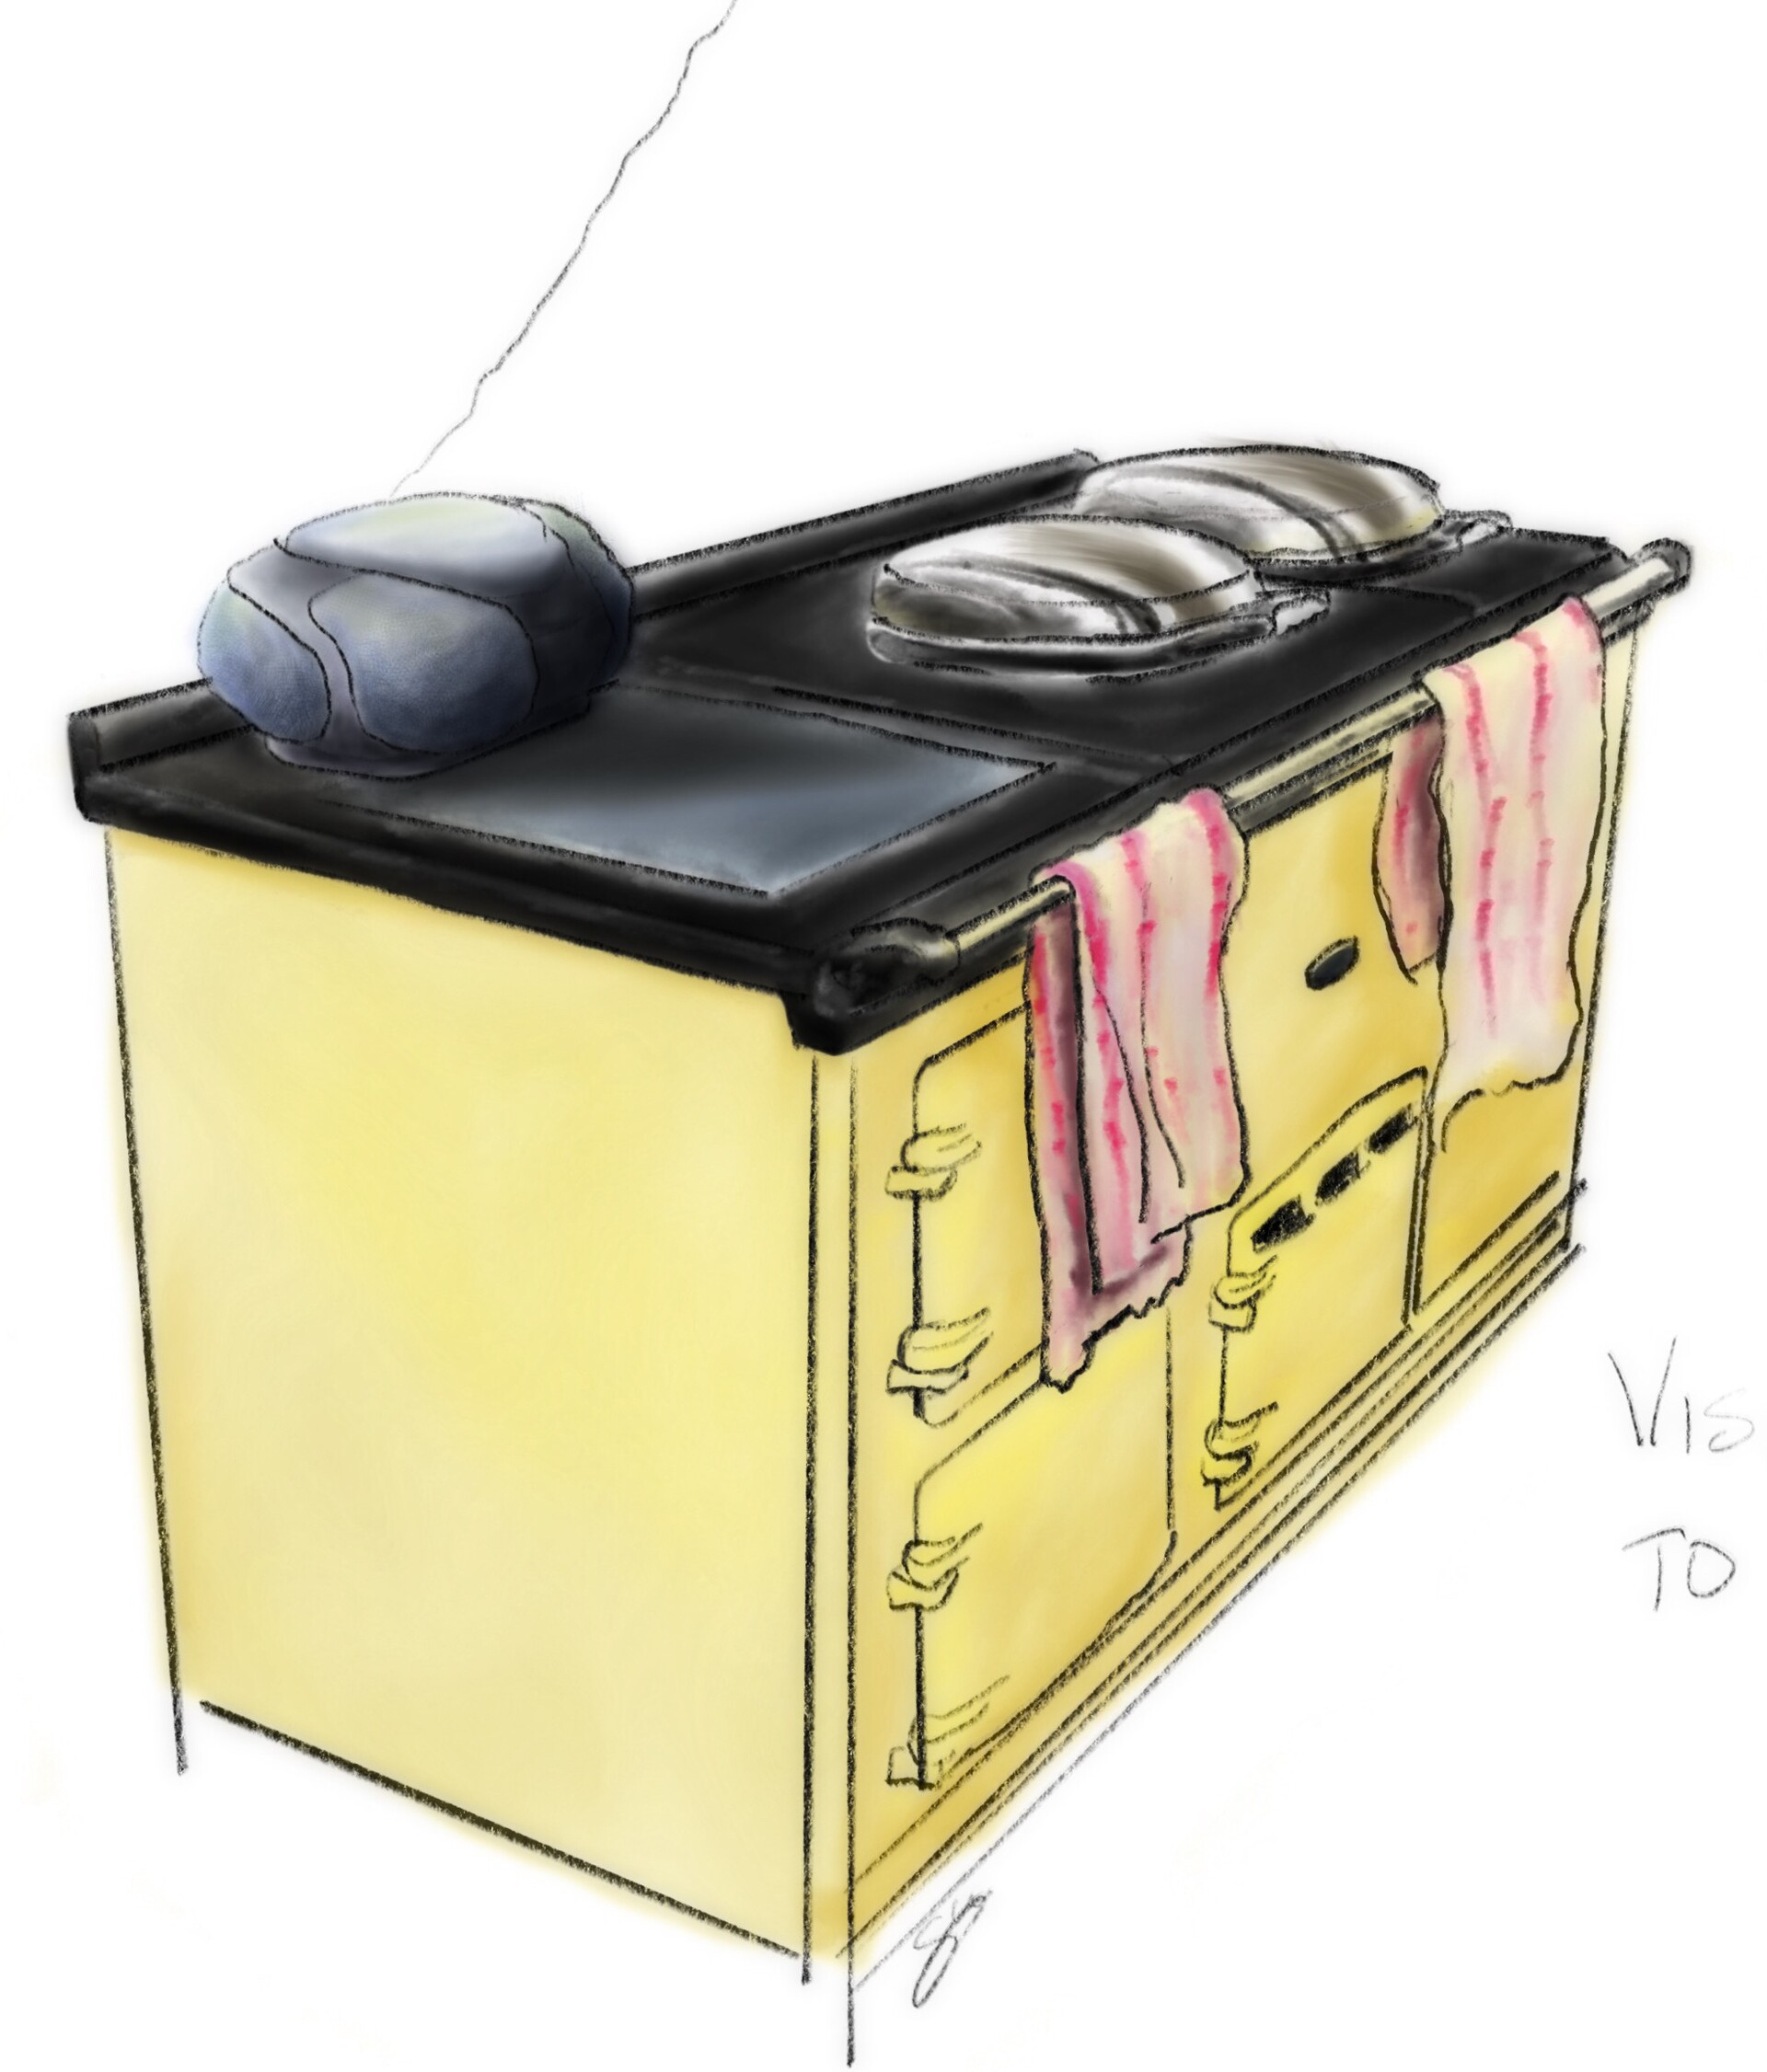 Sketch of an Aga with radio on top - Procreate